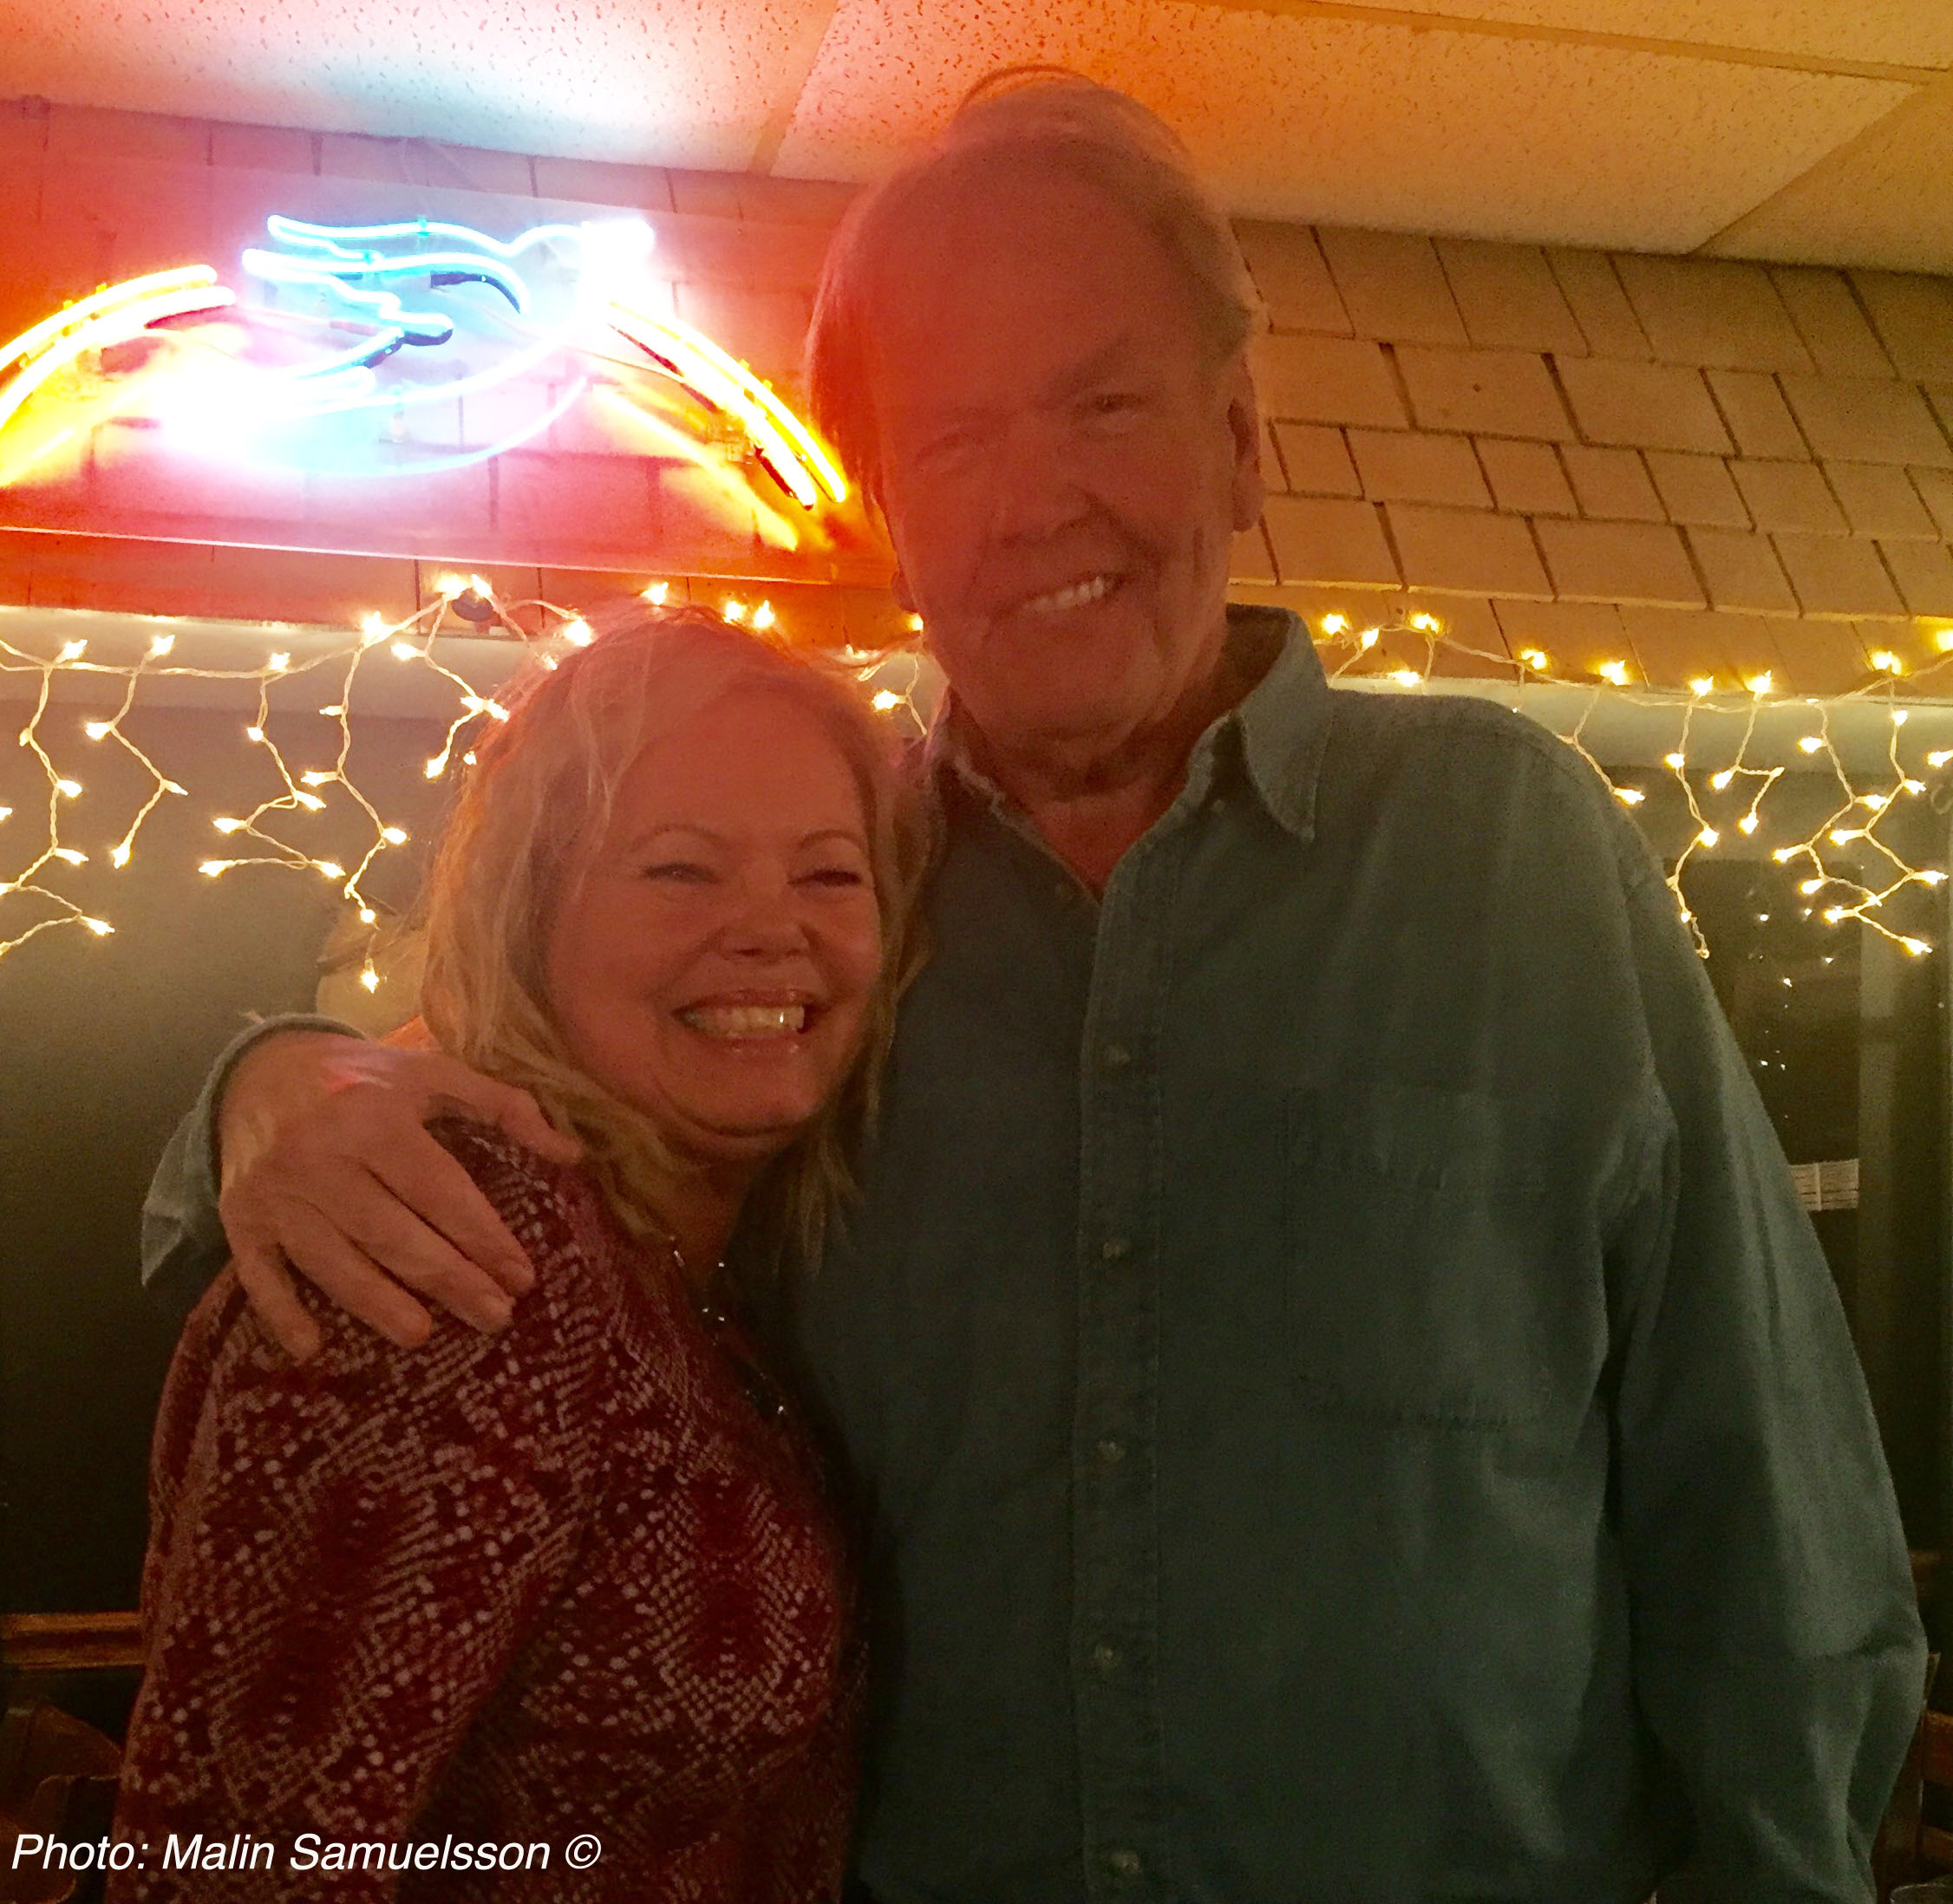 Cina & Al Anderson at The Bluebird Cafe Nashville, TN